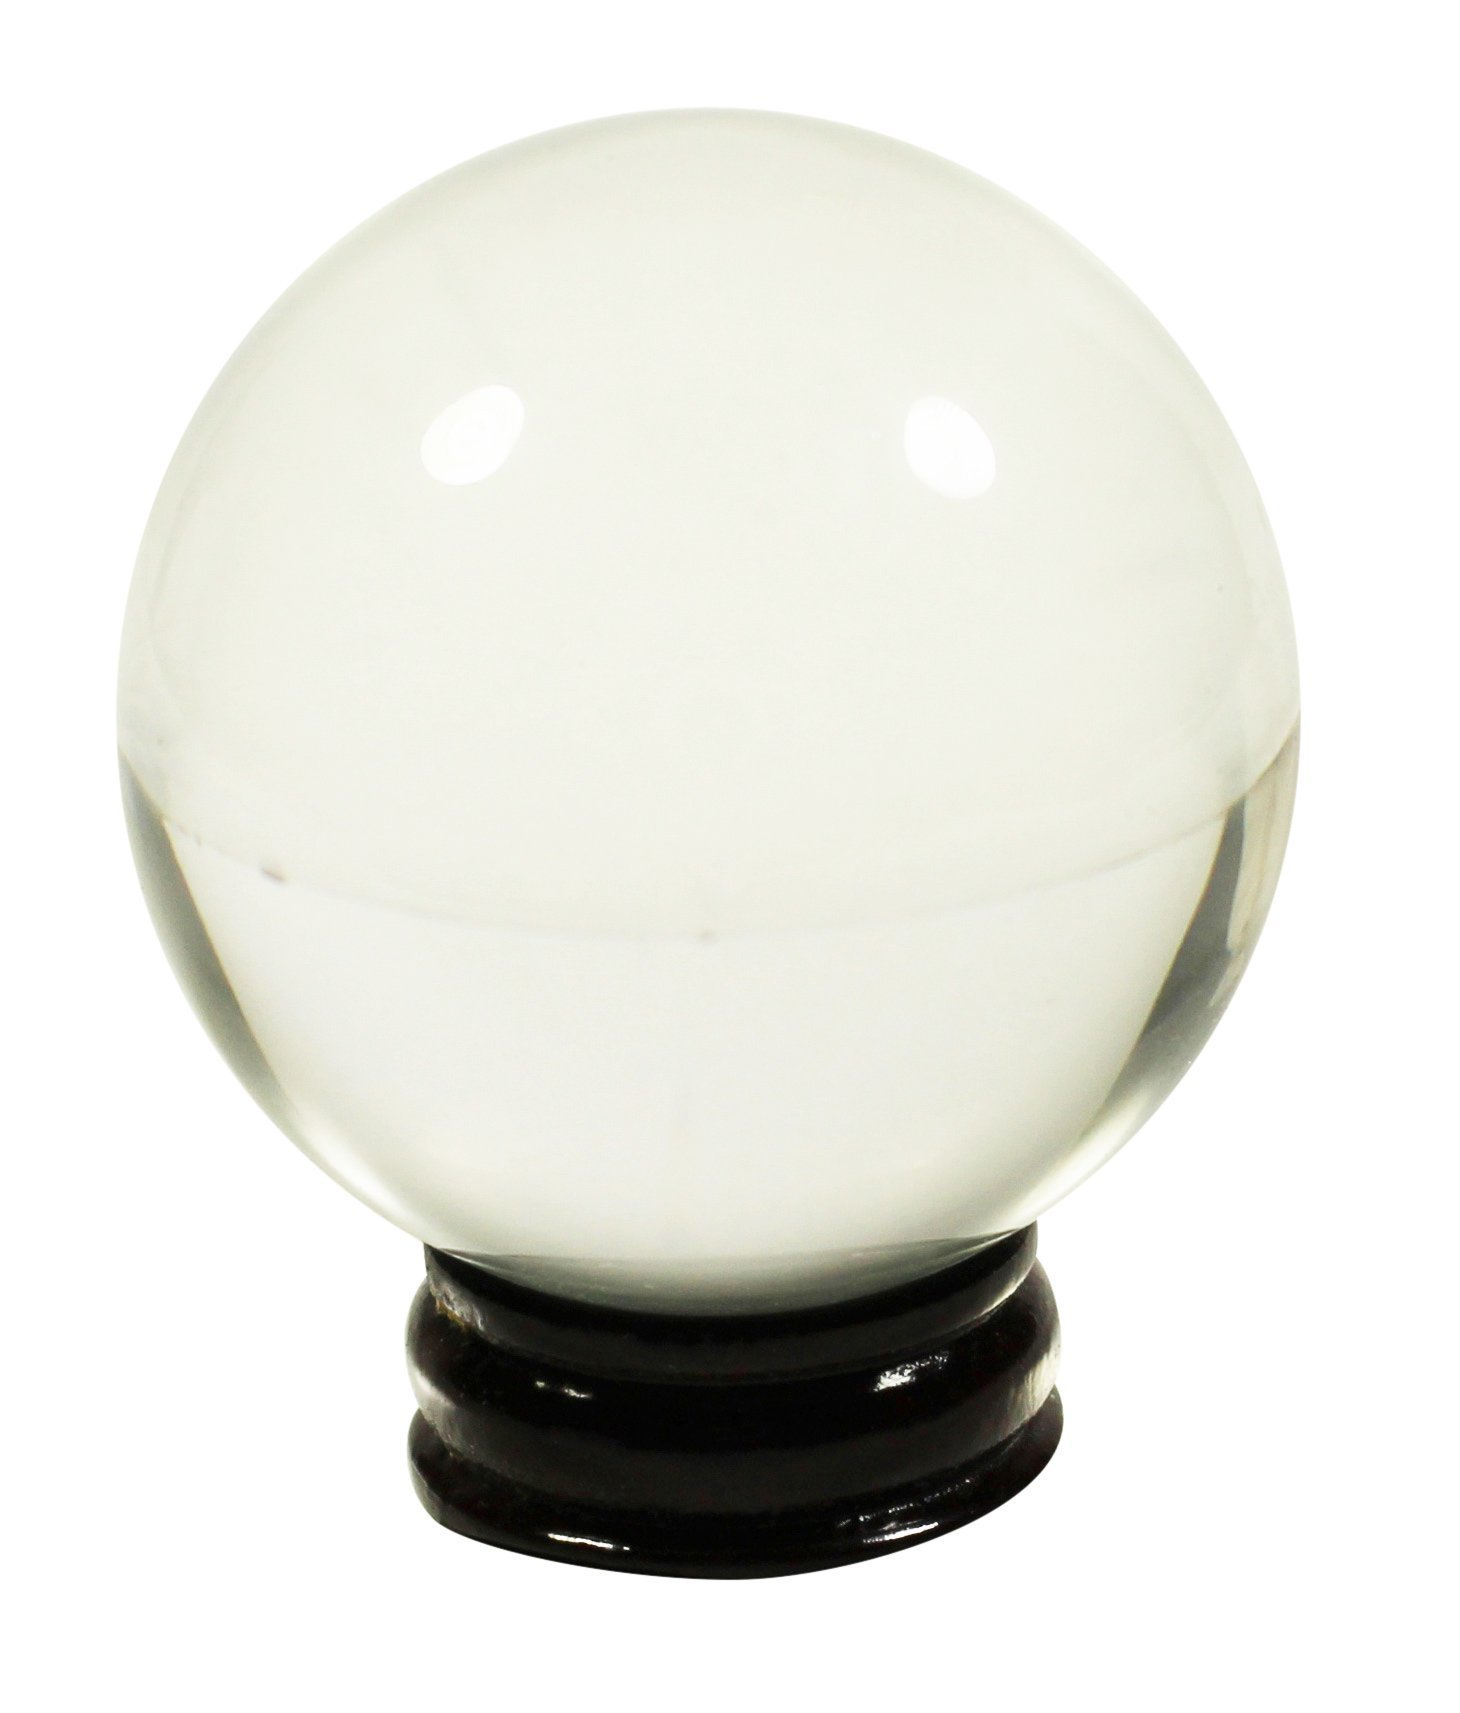 45mm Flawless Clear Crystal Ball Sphere + 2 Display Stands, 1 Wooden 1 Acrylic Gazing Scrying Ball